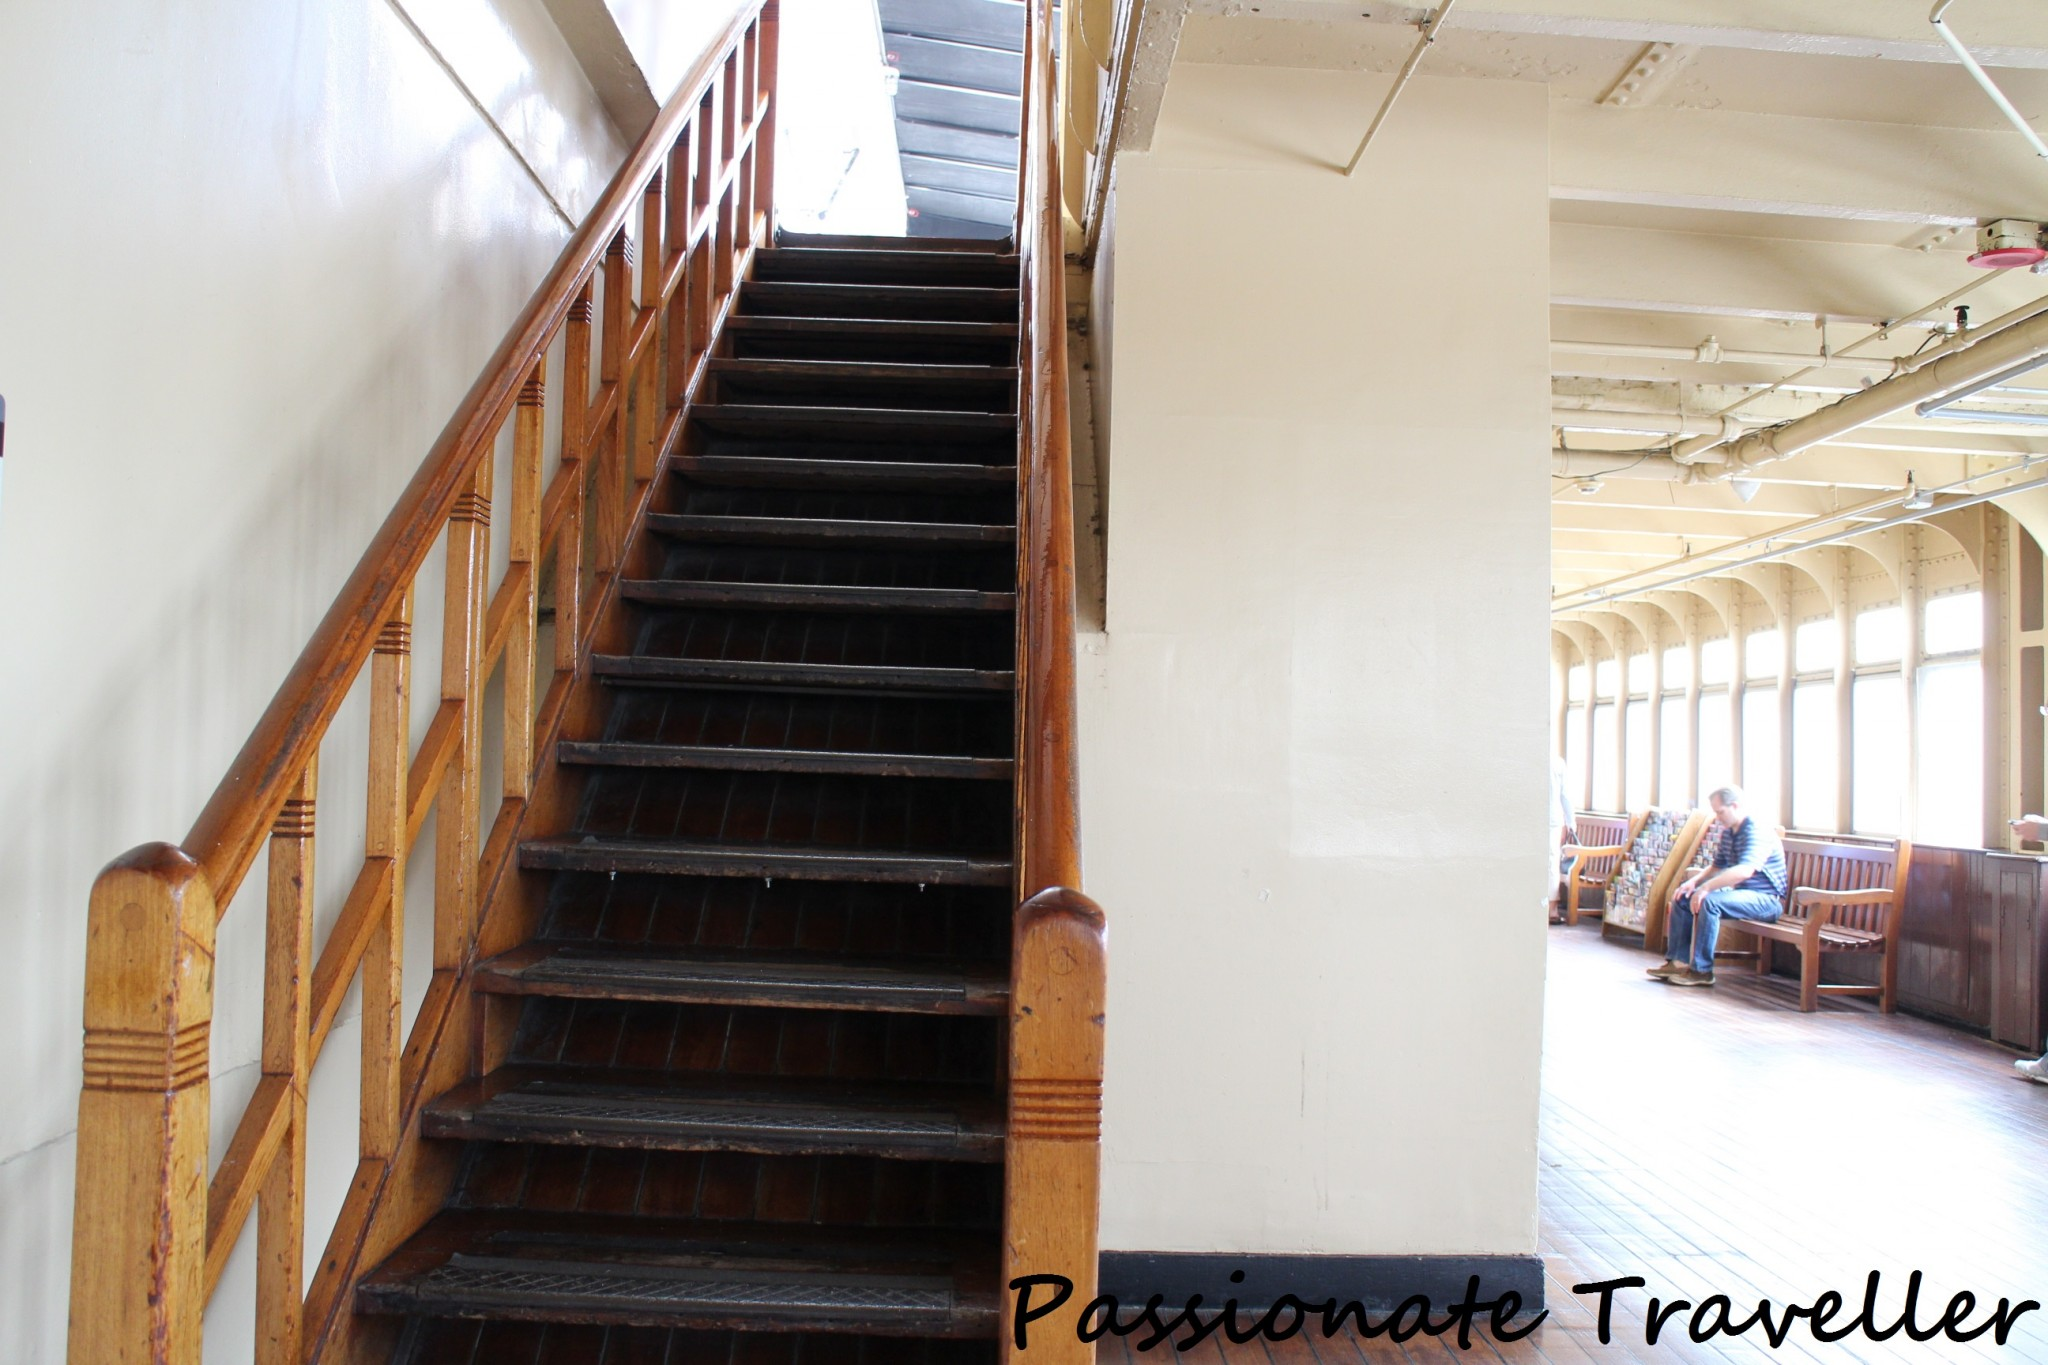 Queen Mary Stairs